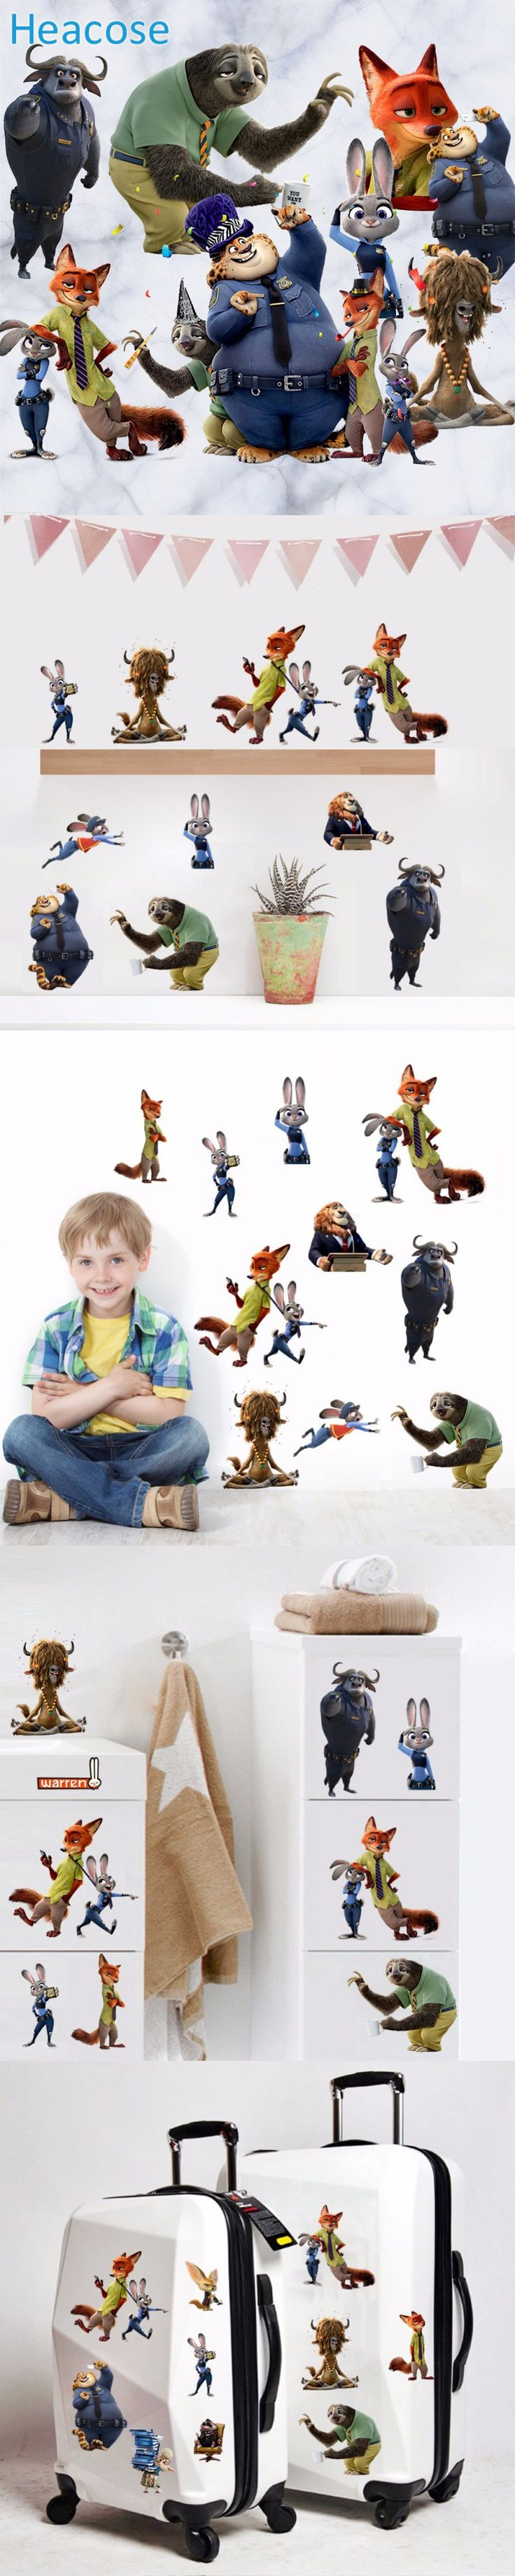 Newest 3D Zootopia Crazy Animals city Wall Stickers Cute Cartoon Wall Decals Mural Art Home Decor Sticker for kids bedroom $5.25